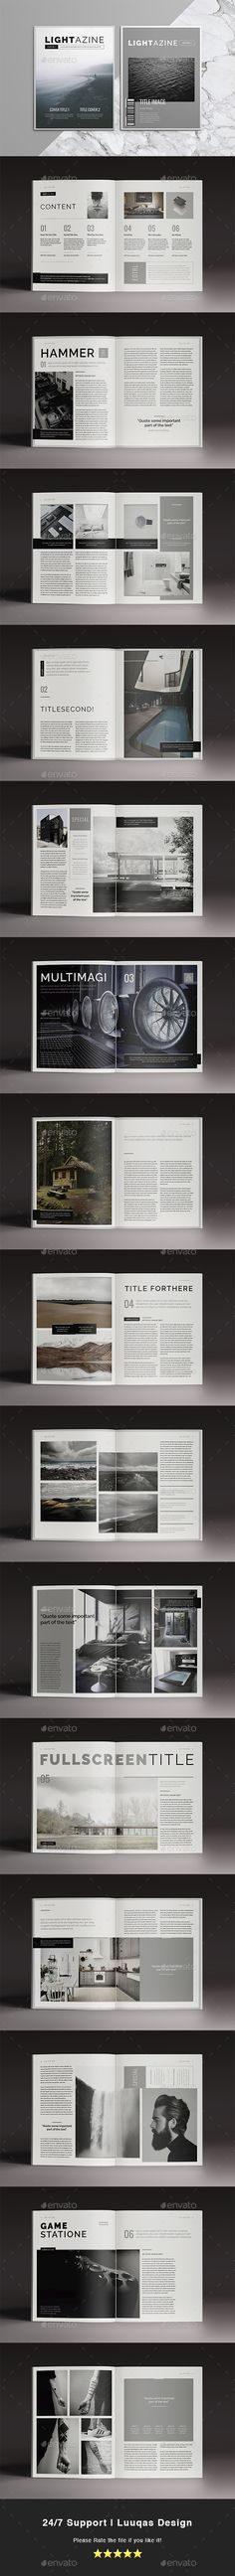 Lightazine Indesign Template - Magazines Print Templates Download here : https://graphicriver.net/item/lightazine-indesign-template/18343442?s_rank=86&ref=Al-fatih